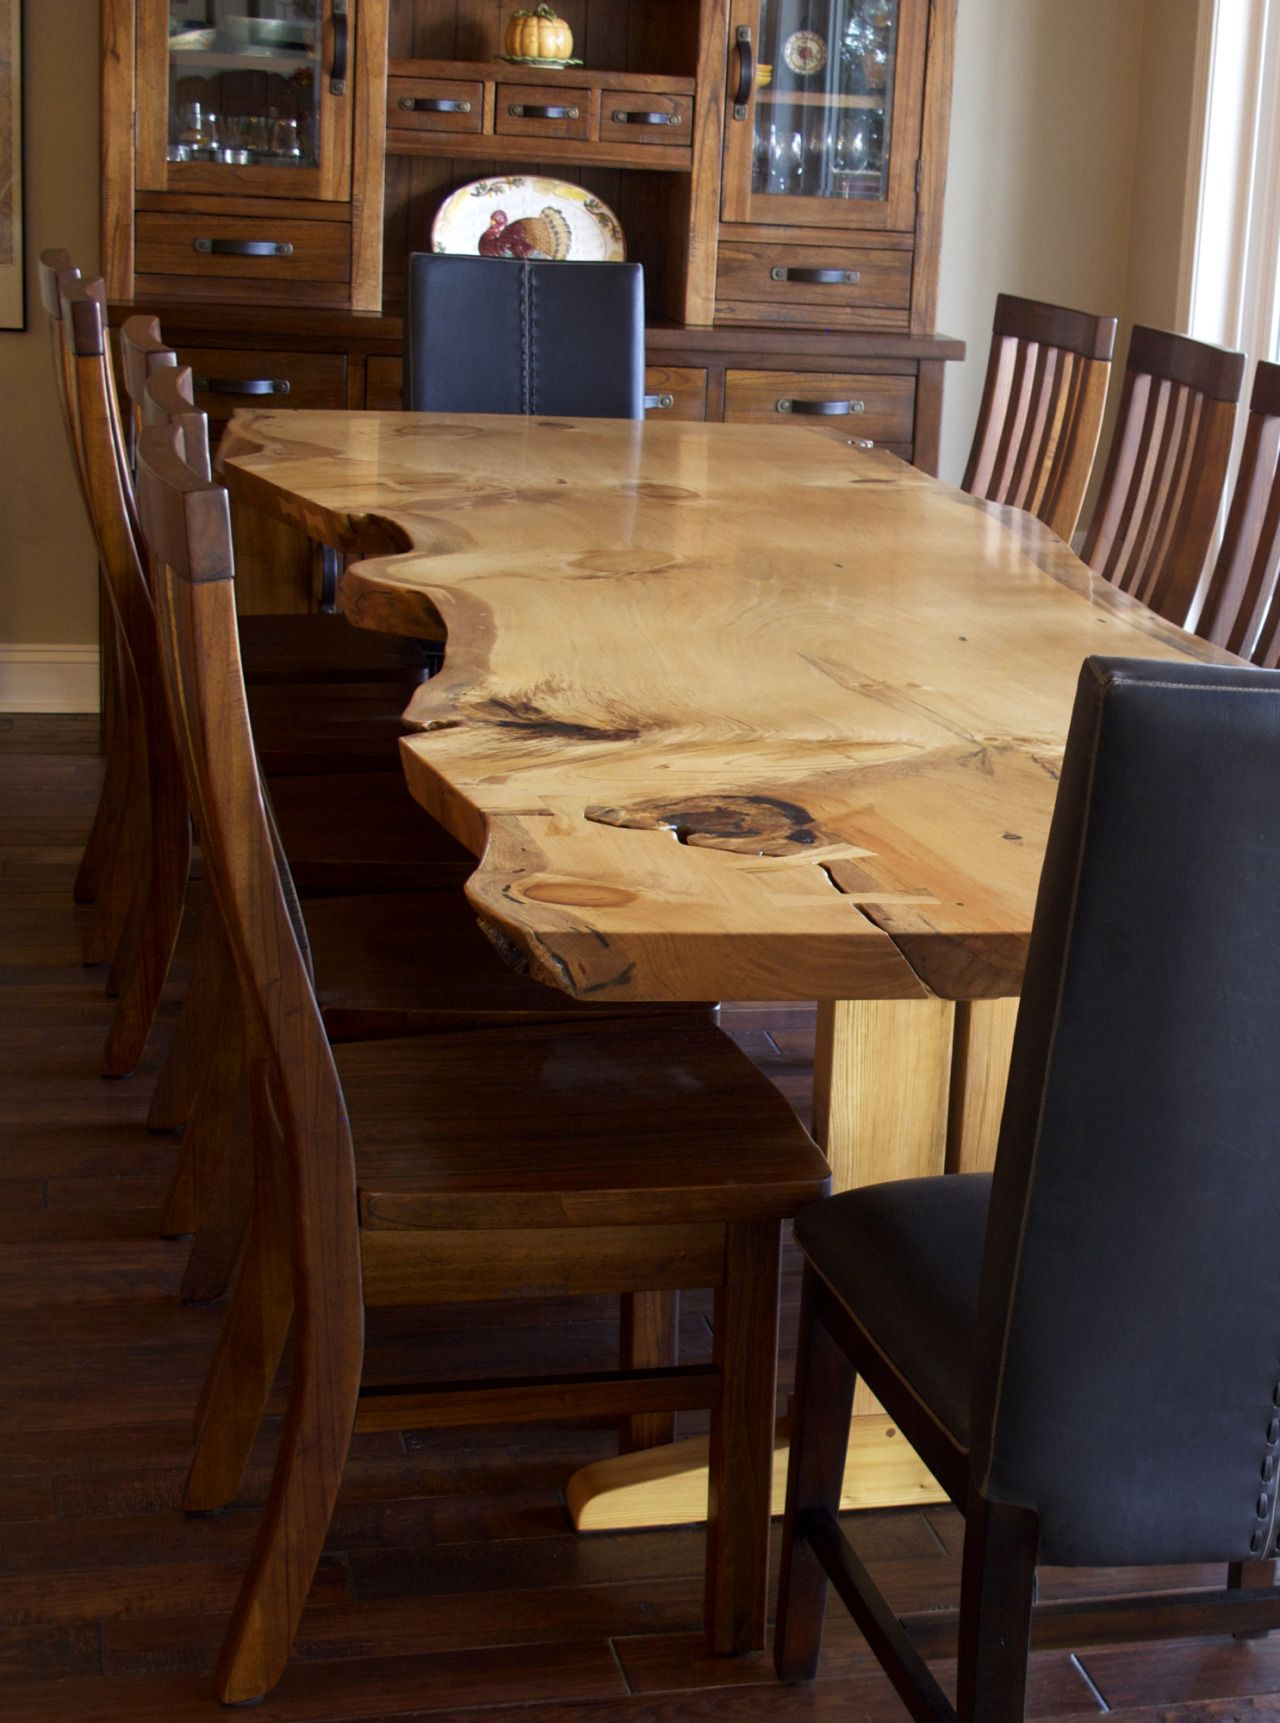 Paul Fuelling Woodworking We Finished This Pine Slab Dining Table